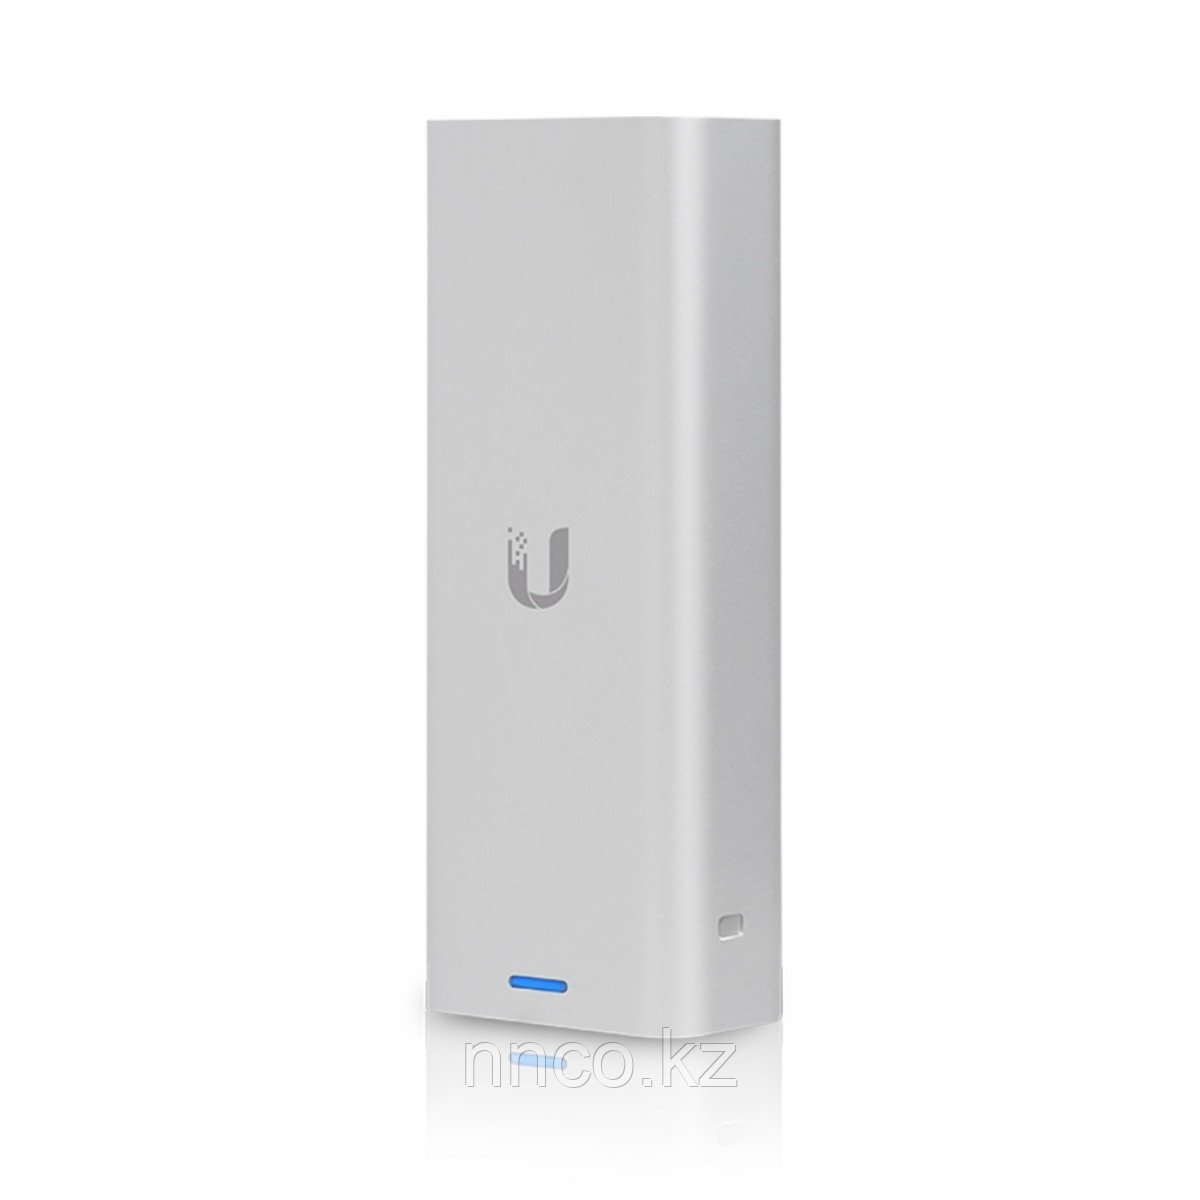 Контроллер UniFi Cloud Key Gen2